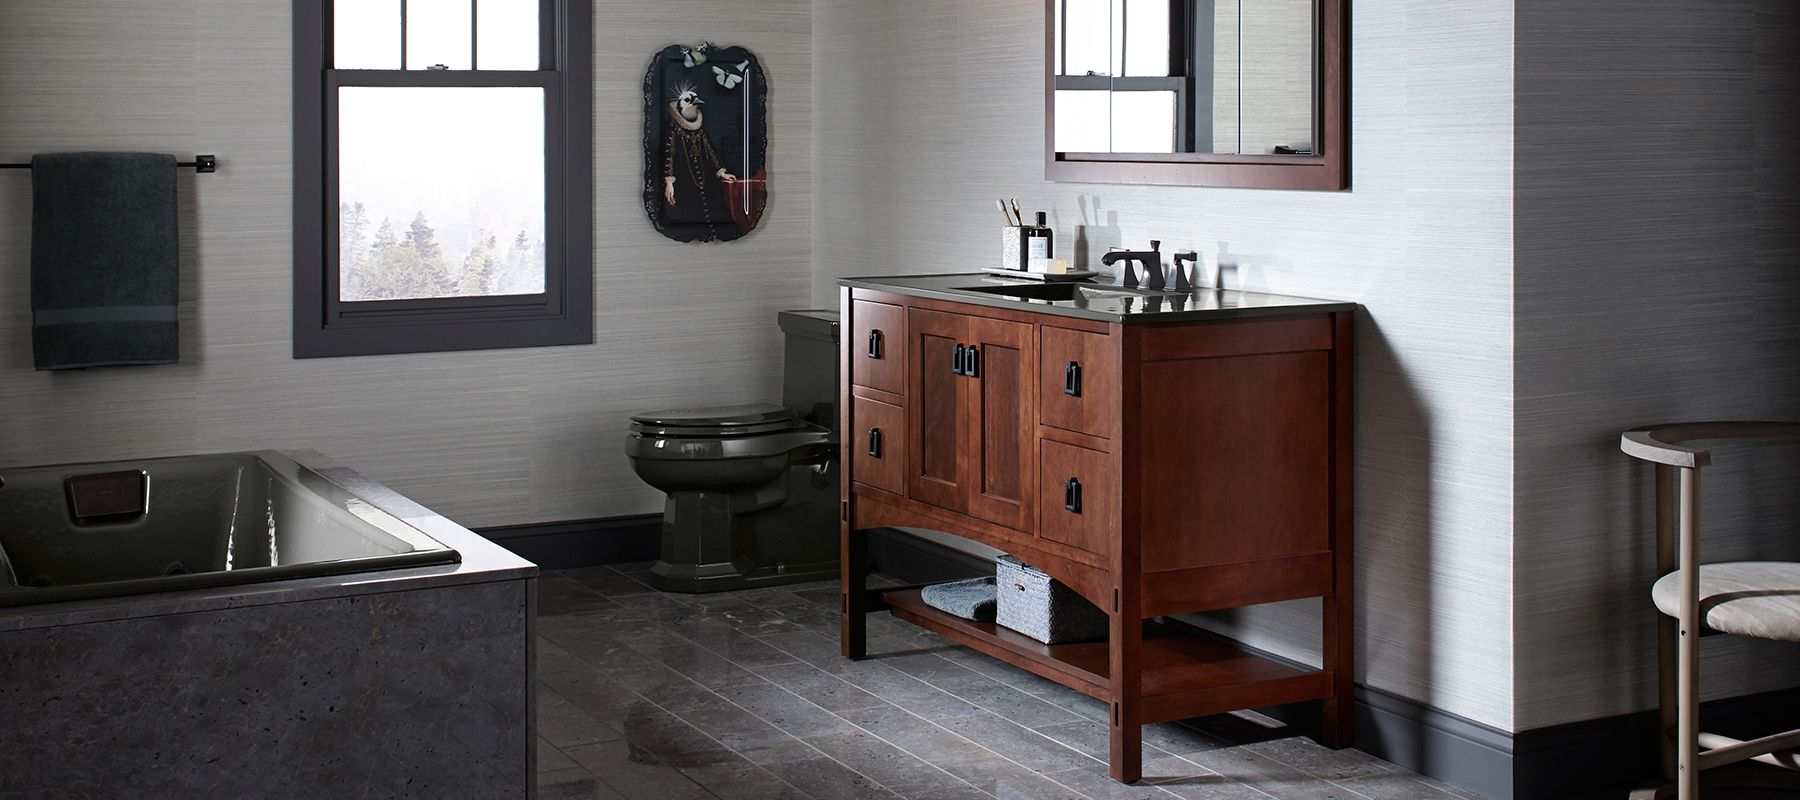 Bathroom Double Sink Vanity Ideas Bathroom Sinks Bathroom Kohler